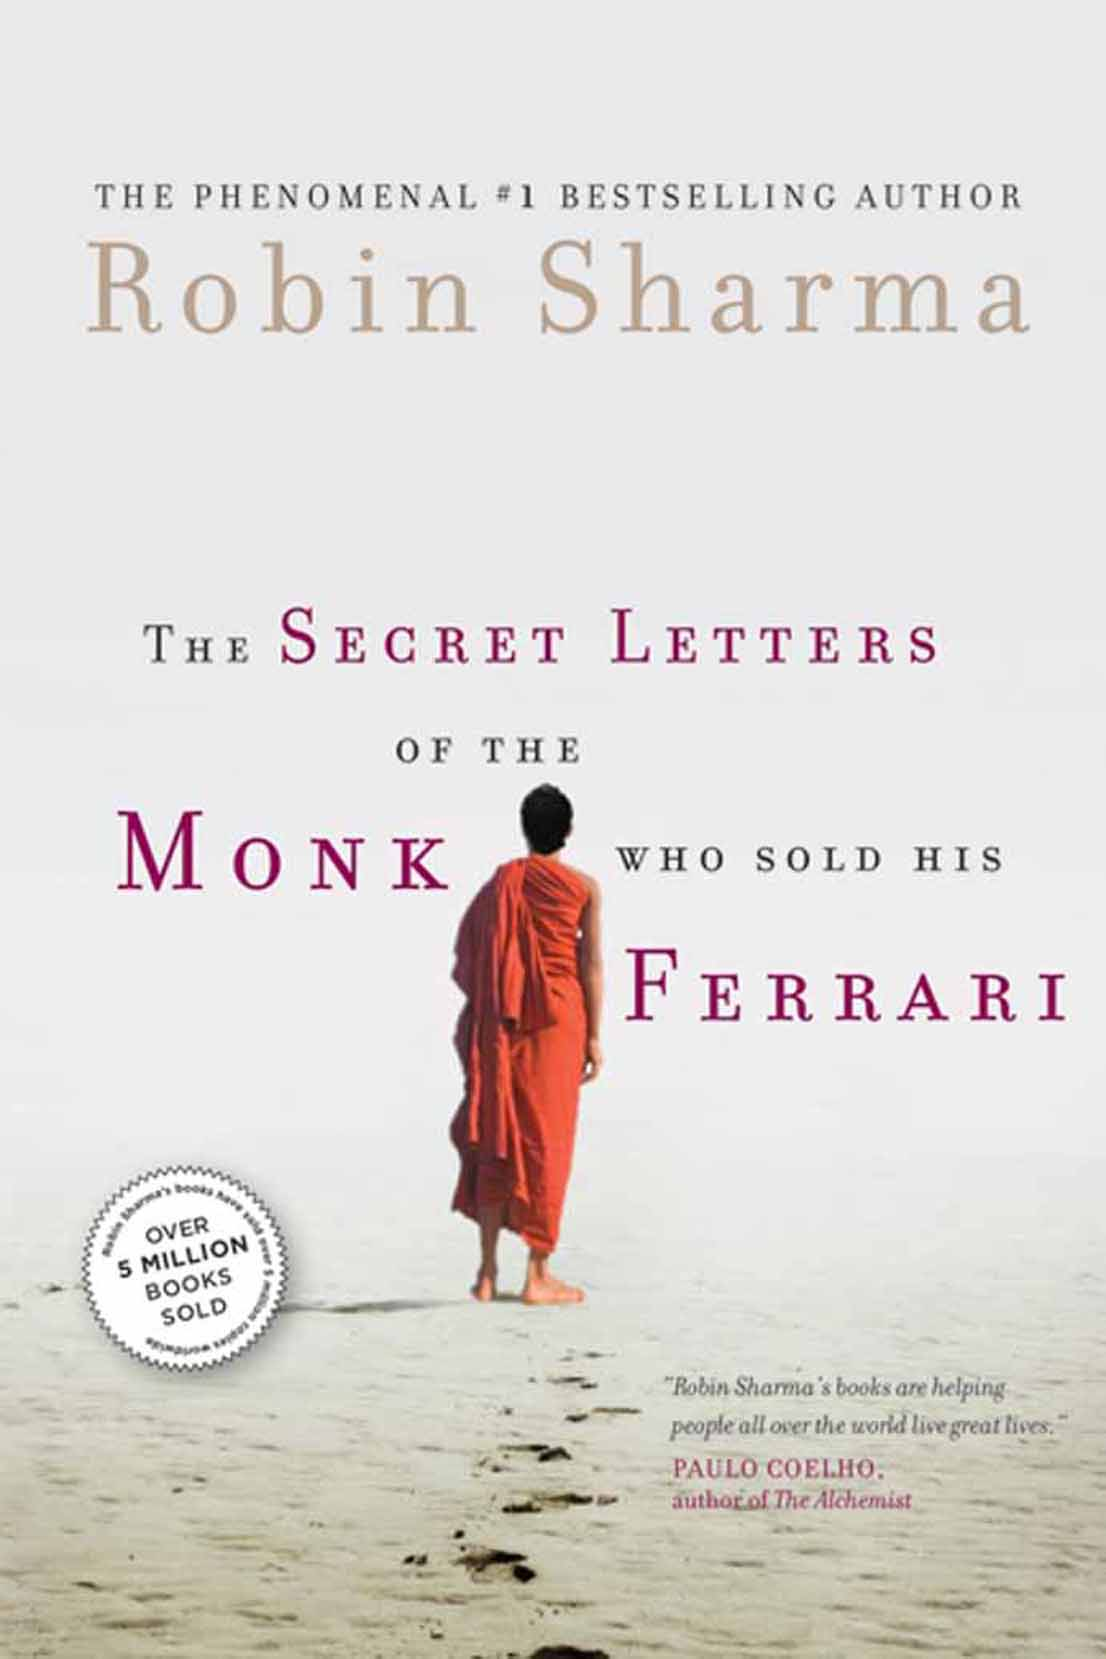 Click here to read The Secret Letters of the Monk Who Sold His Ferrari